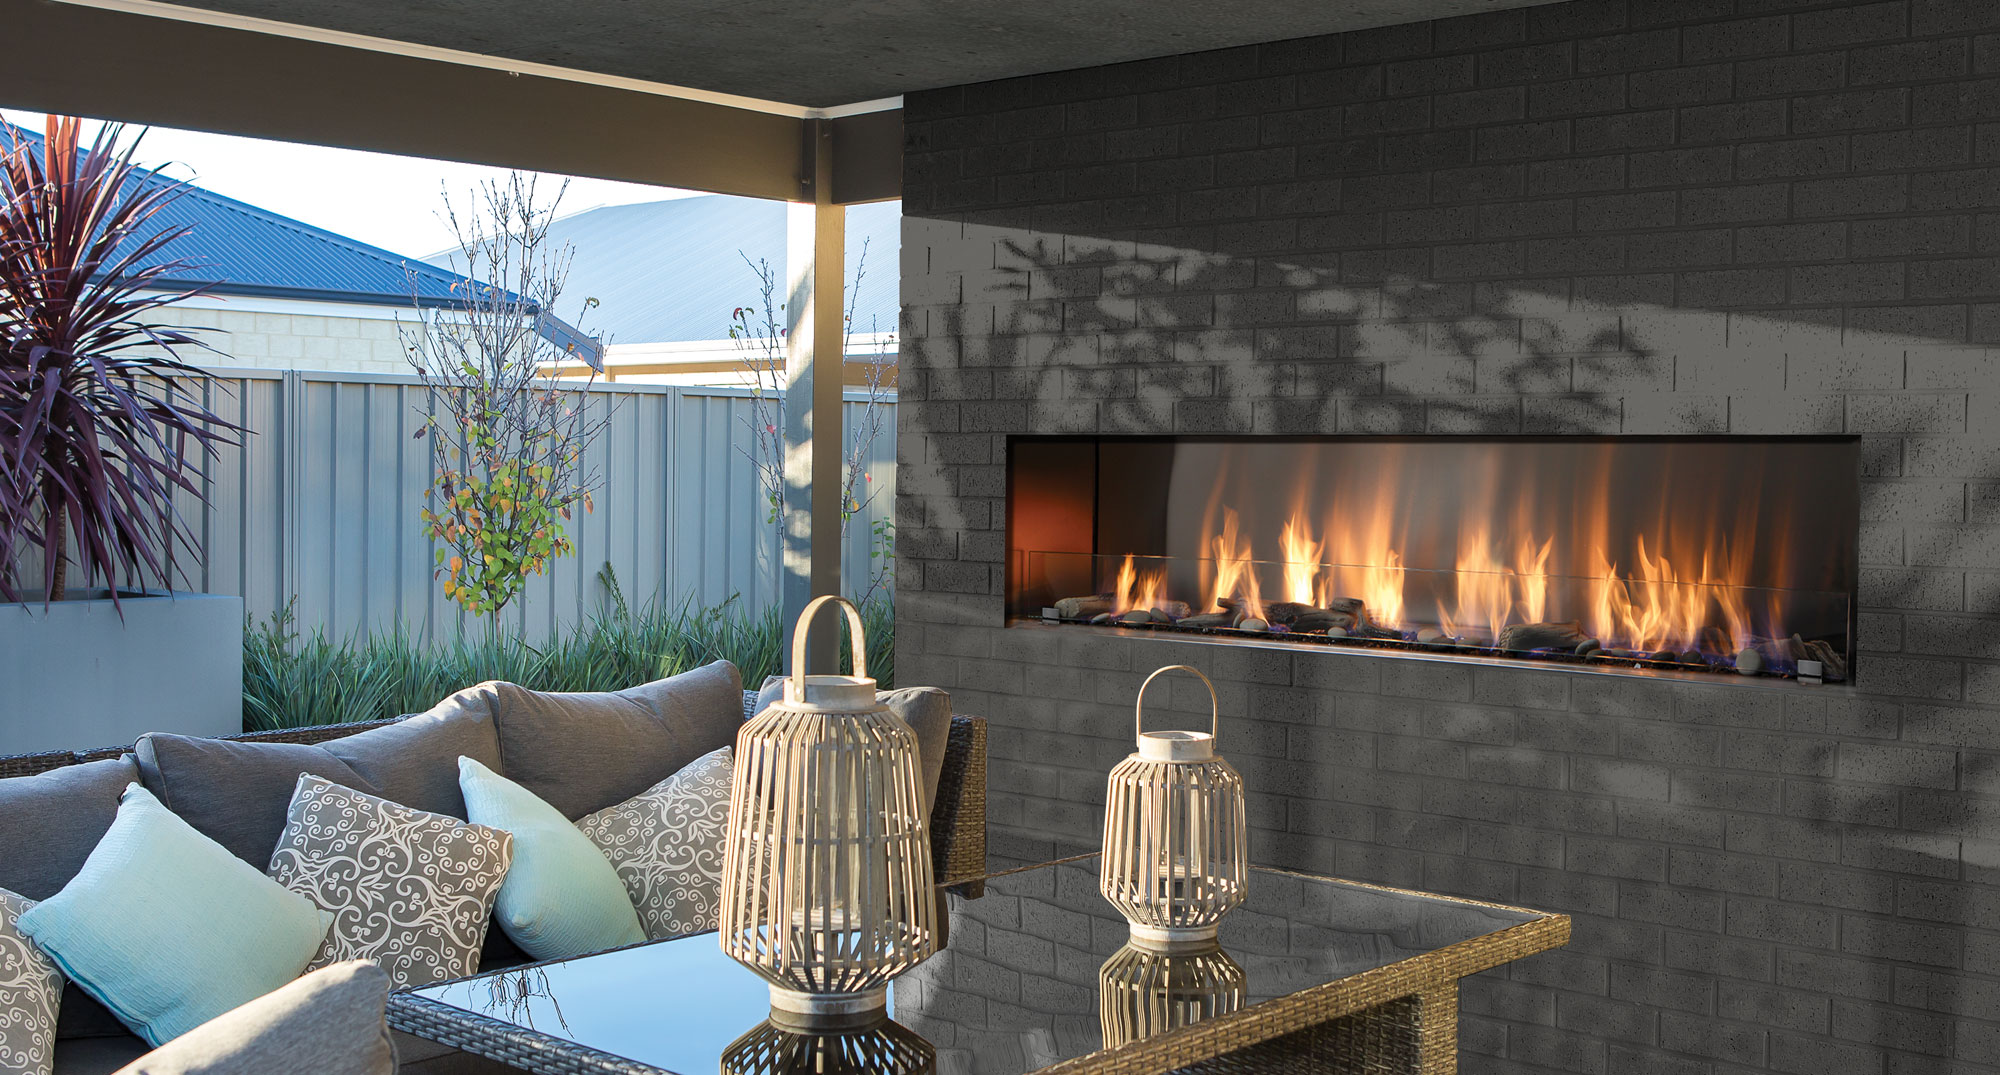 Charmglow Gas Fireplace Awesome Outdoor Linear Fireplace Charming Fireplace